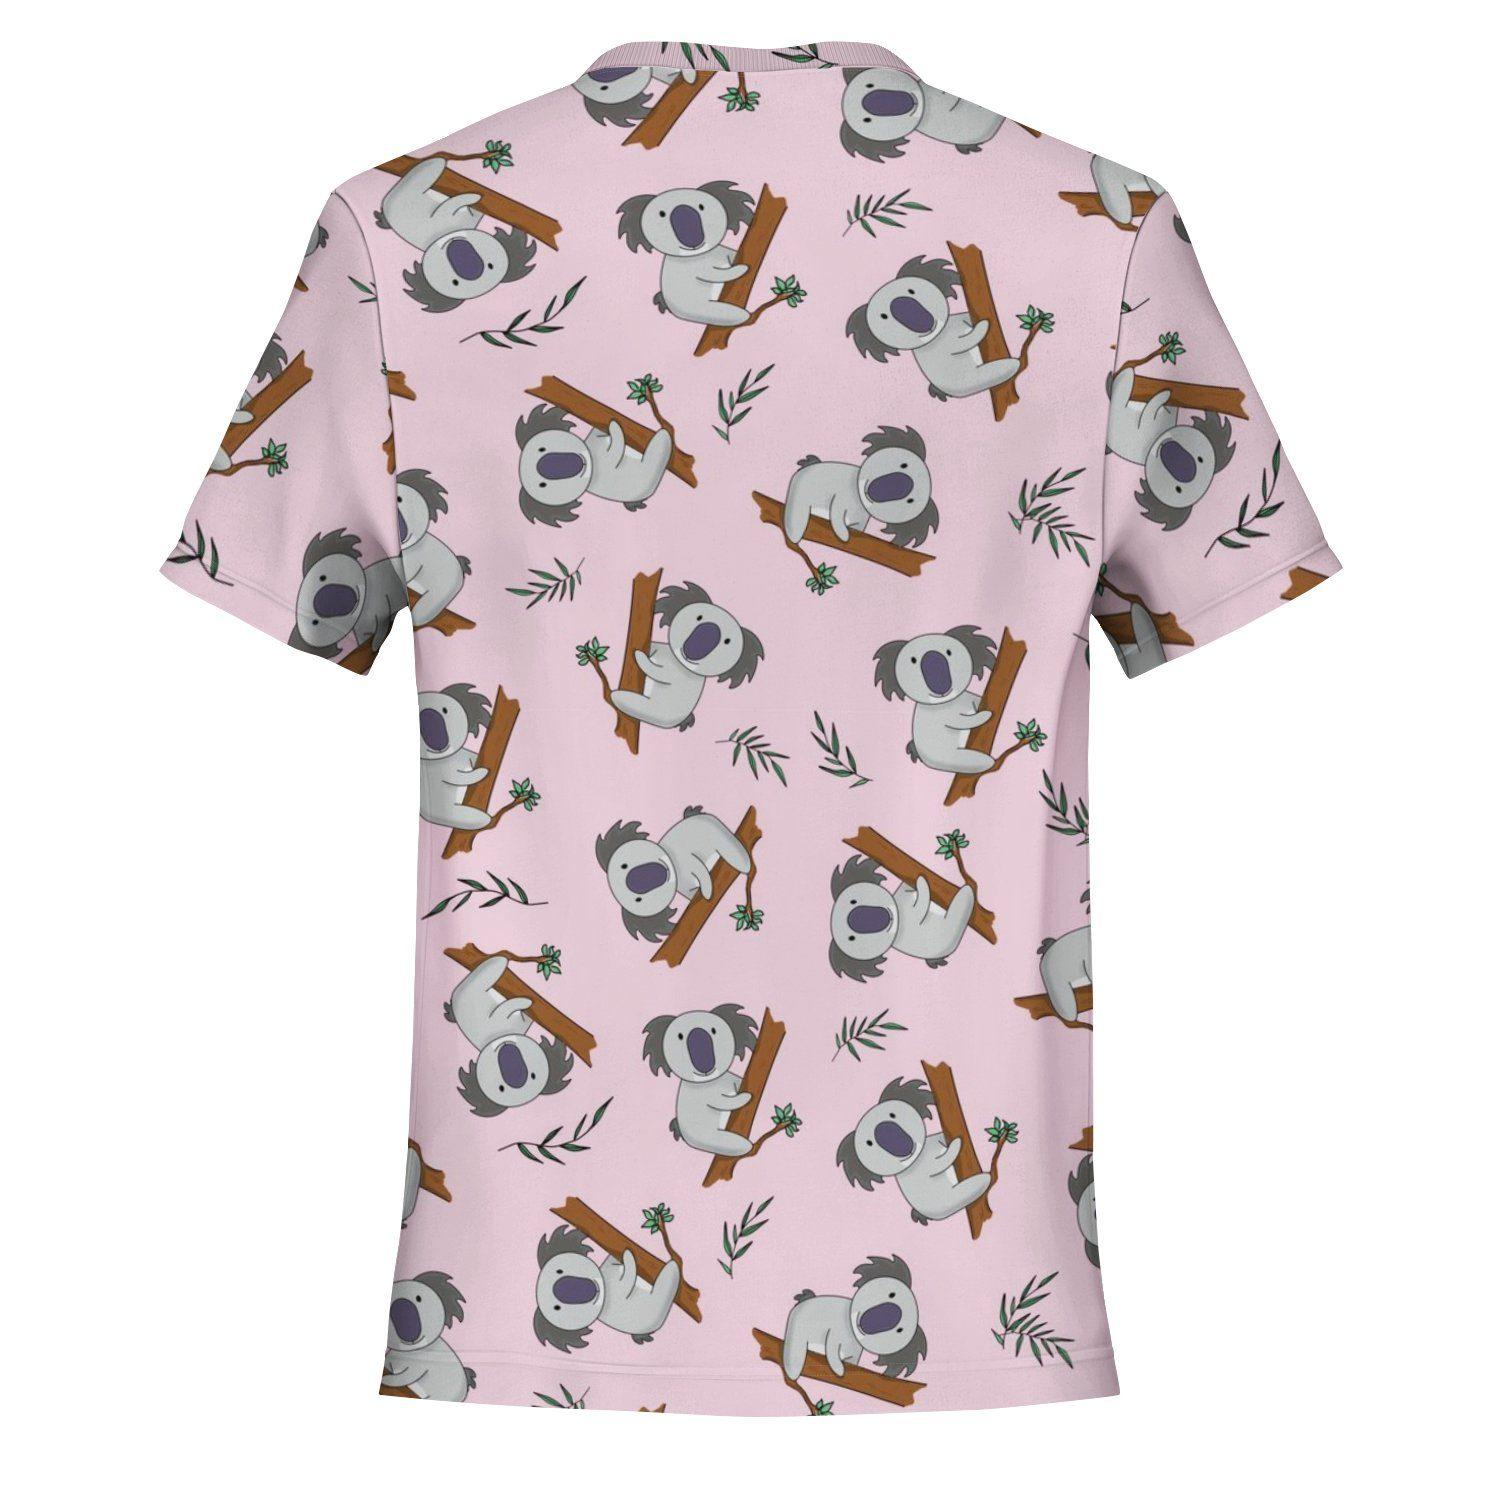 Koalas Pink T-shirt - Fair Dinkum Fashion